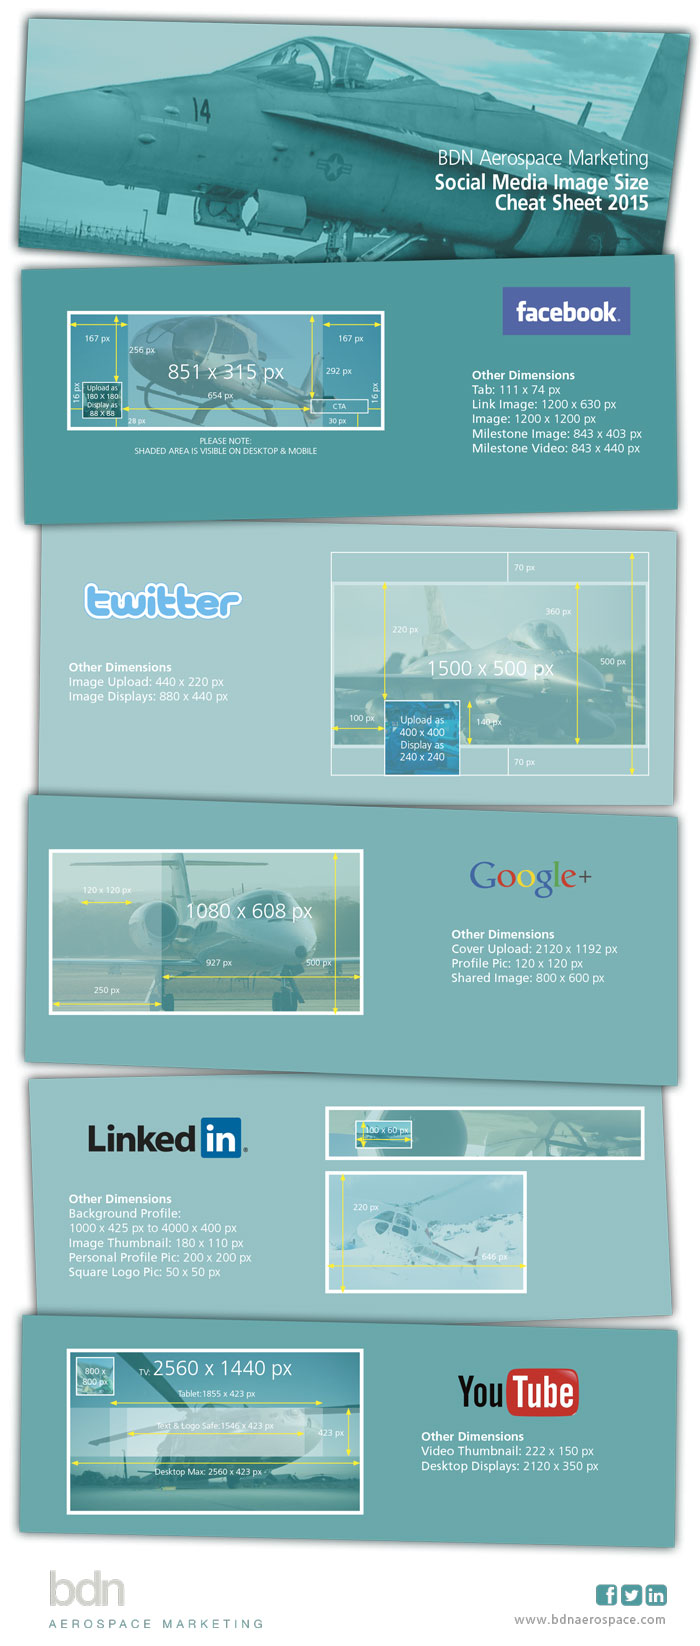 Social-Media-Images-Sizing-201511